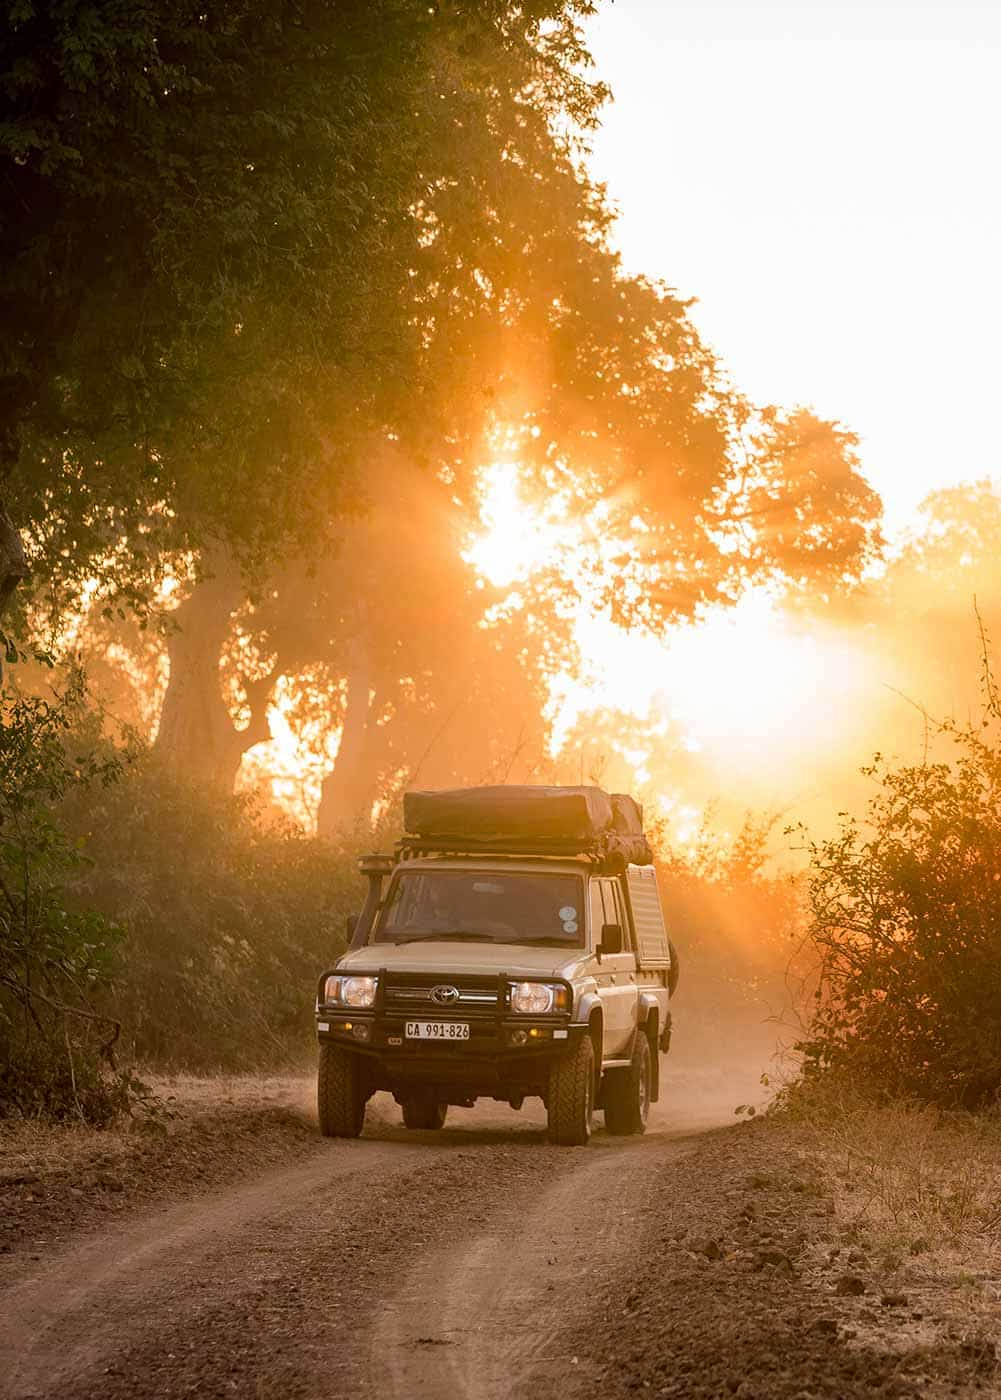 Safari Drive Vehicle driving on African dirt road at sunset